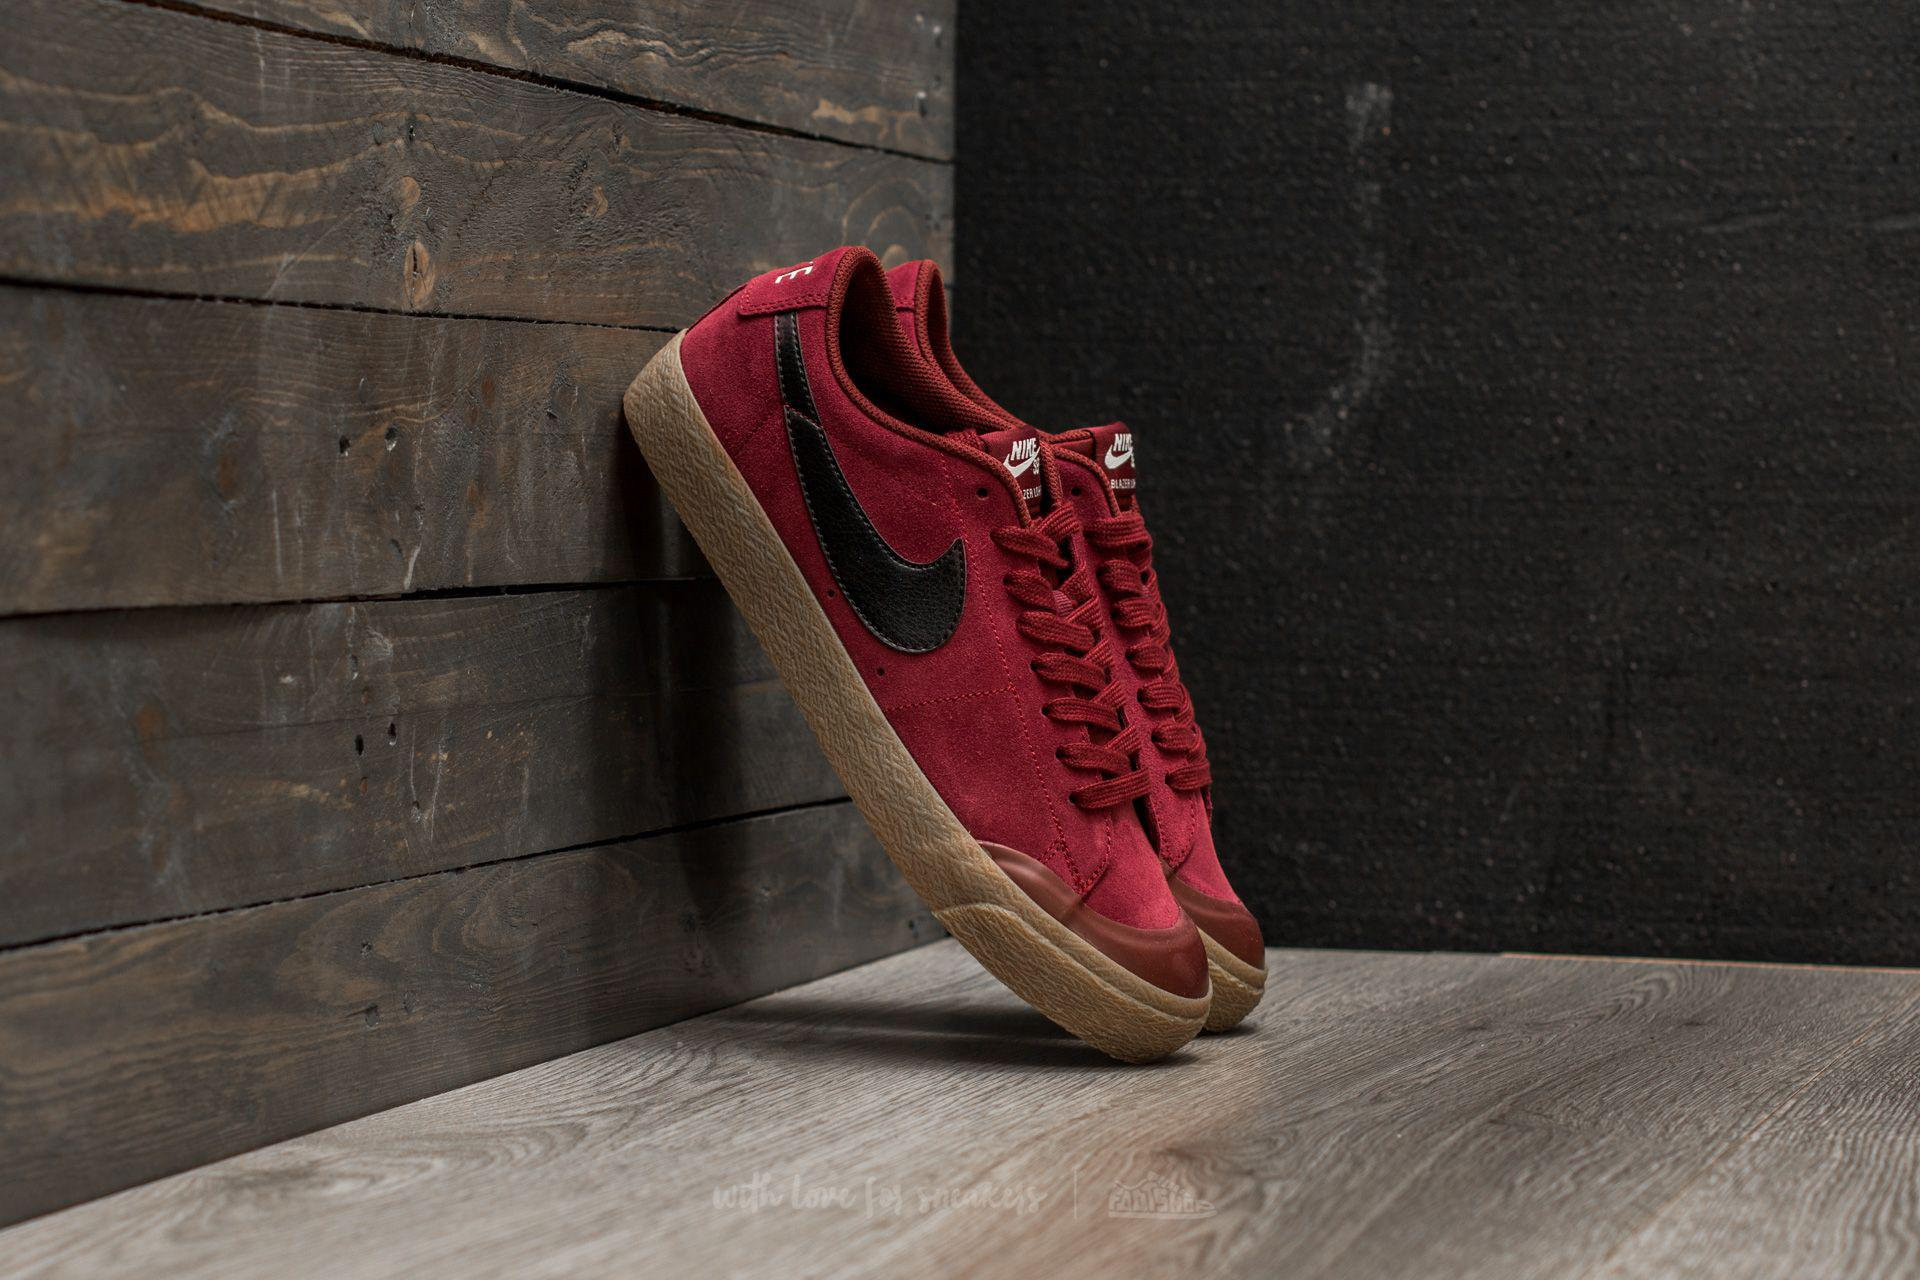 7b52e8000f80 Lyst - Nike Sb Blazer Zoom Low Xt Dark Team Red  Black in Red for Men